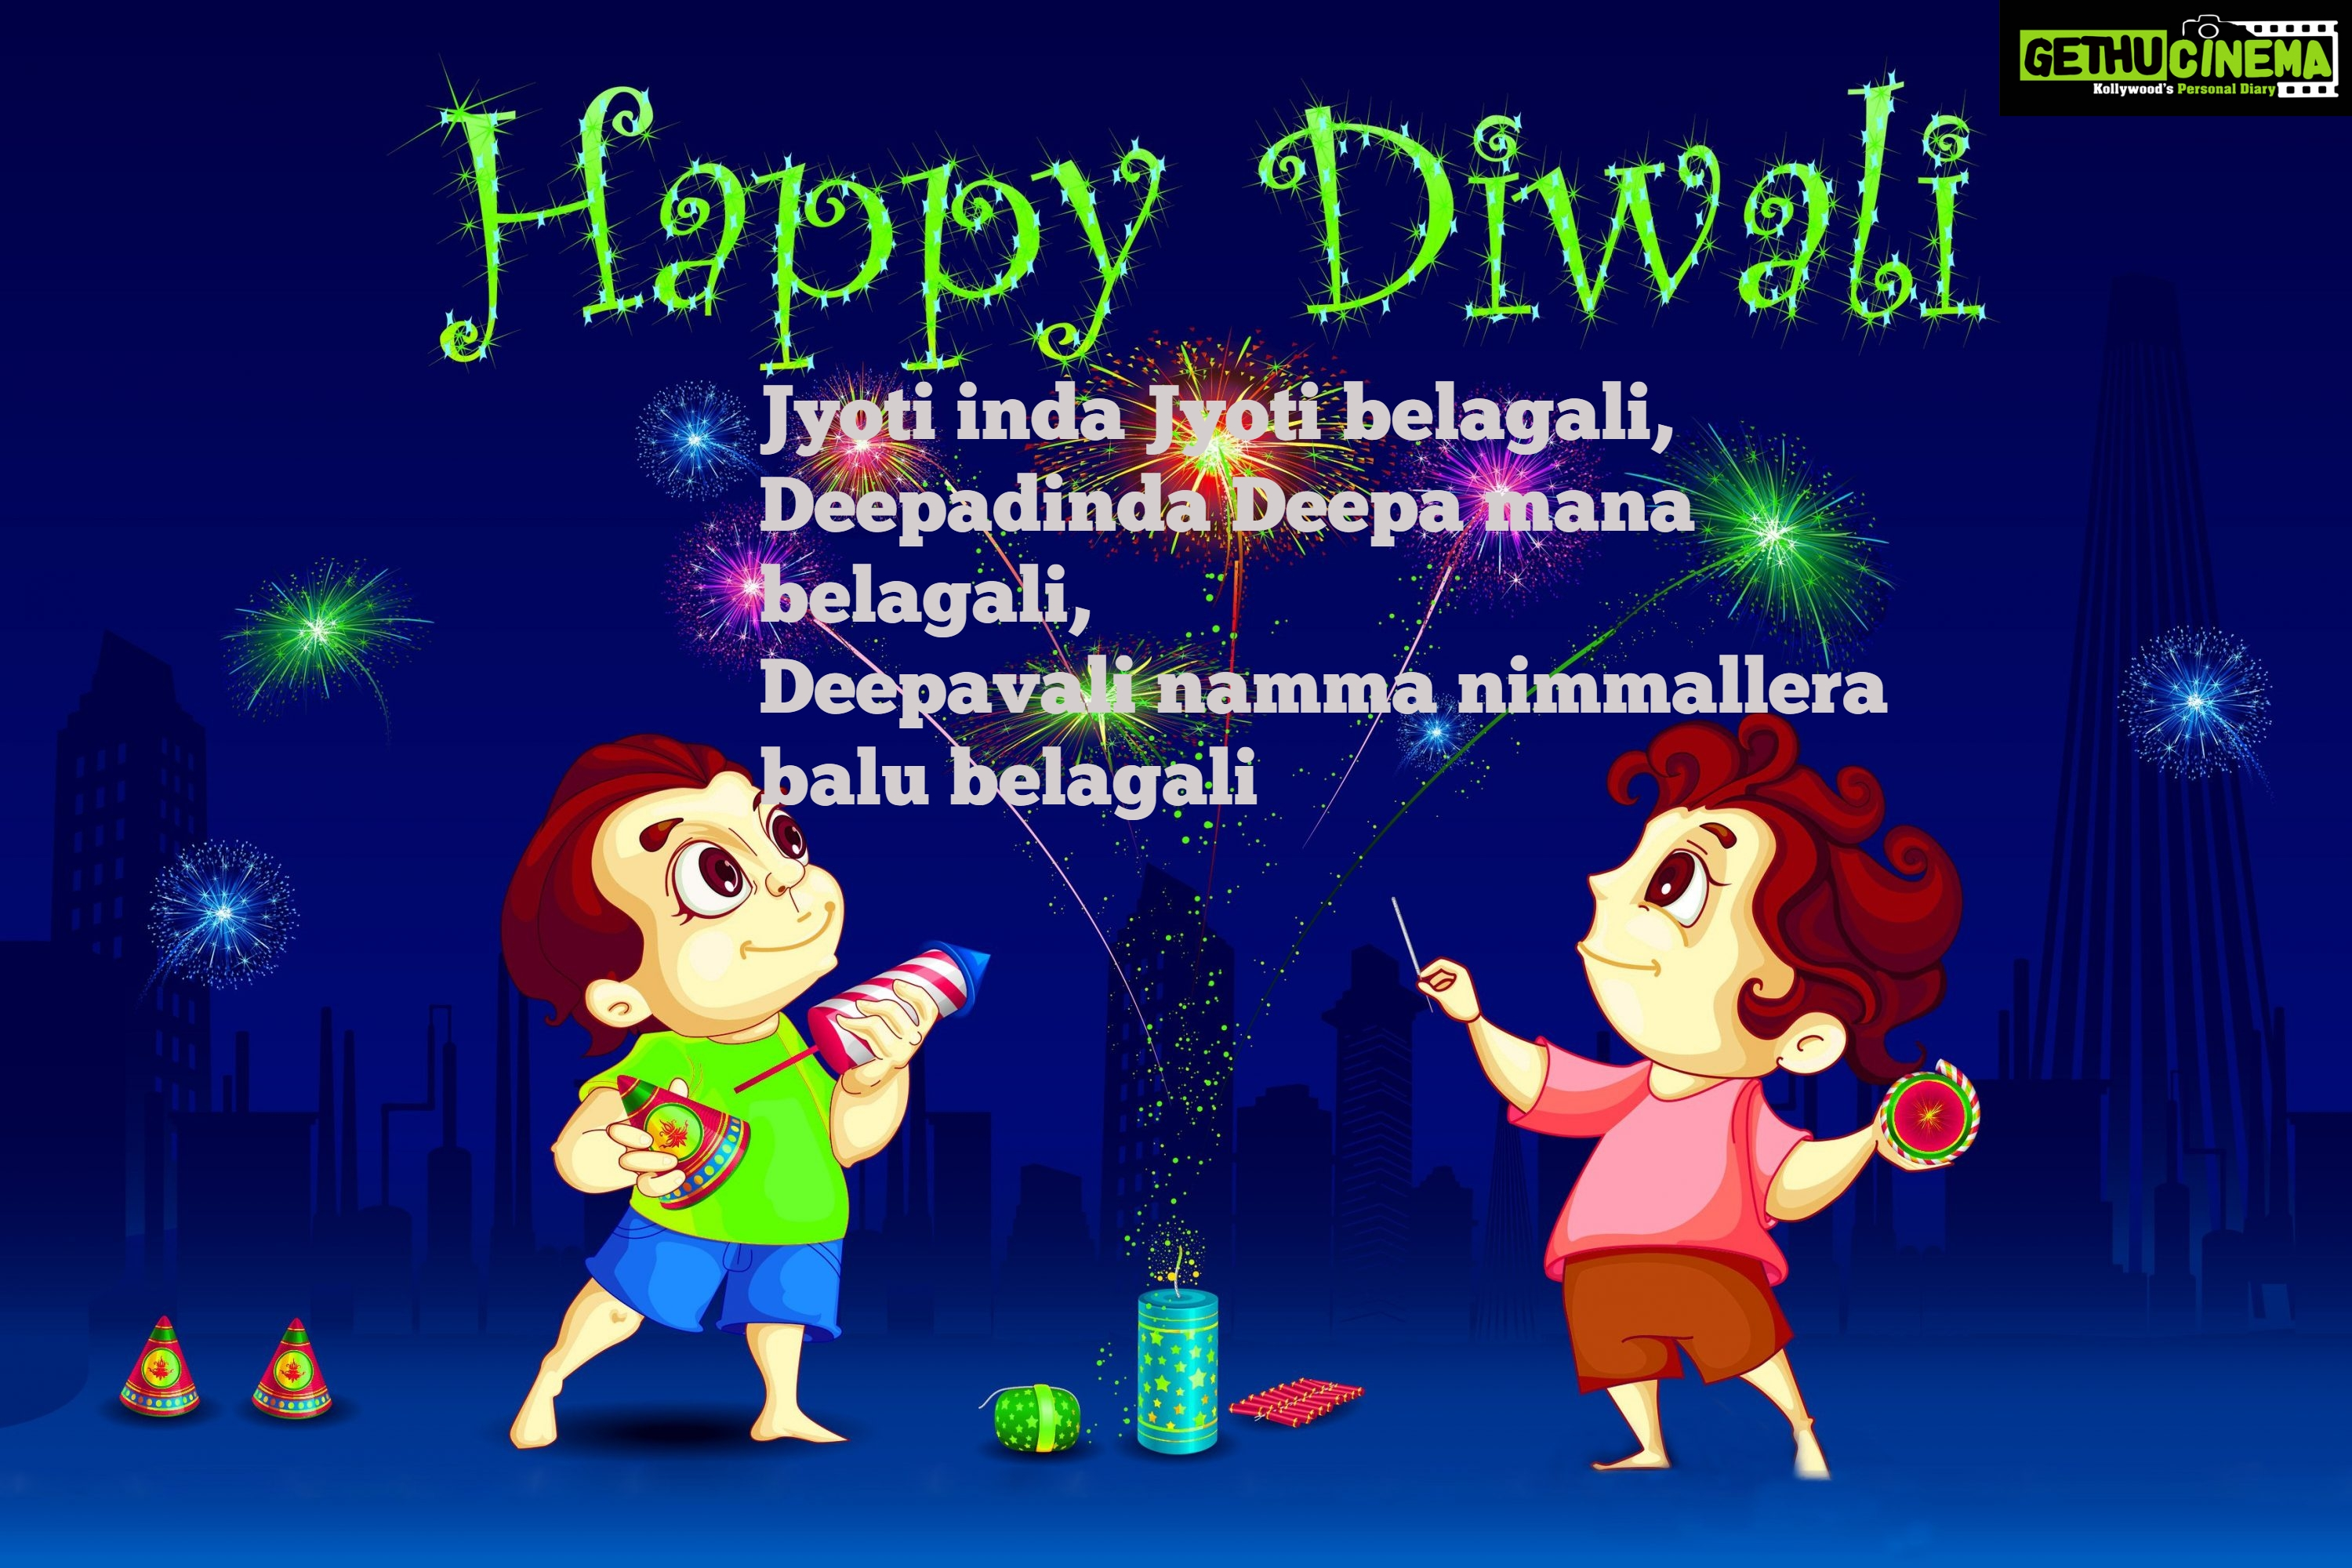 diwali wishes kannada family friends greetings quotes gethu